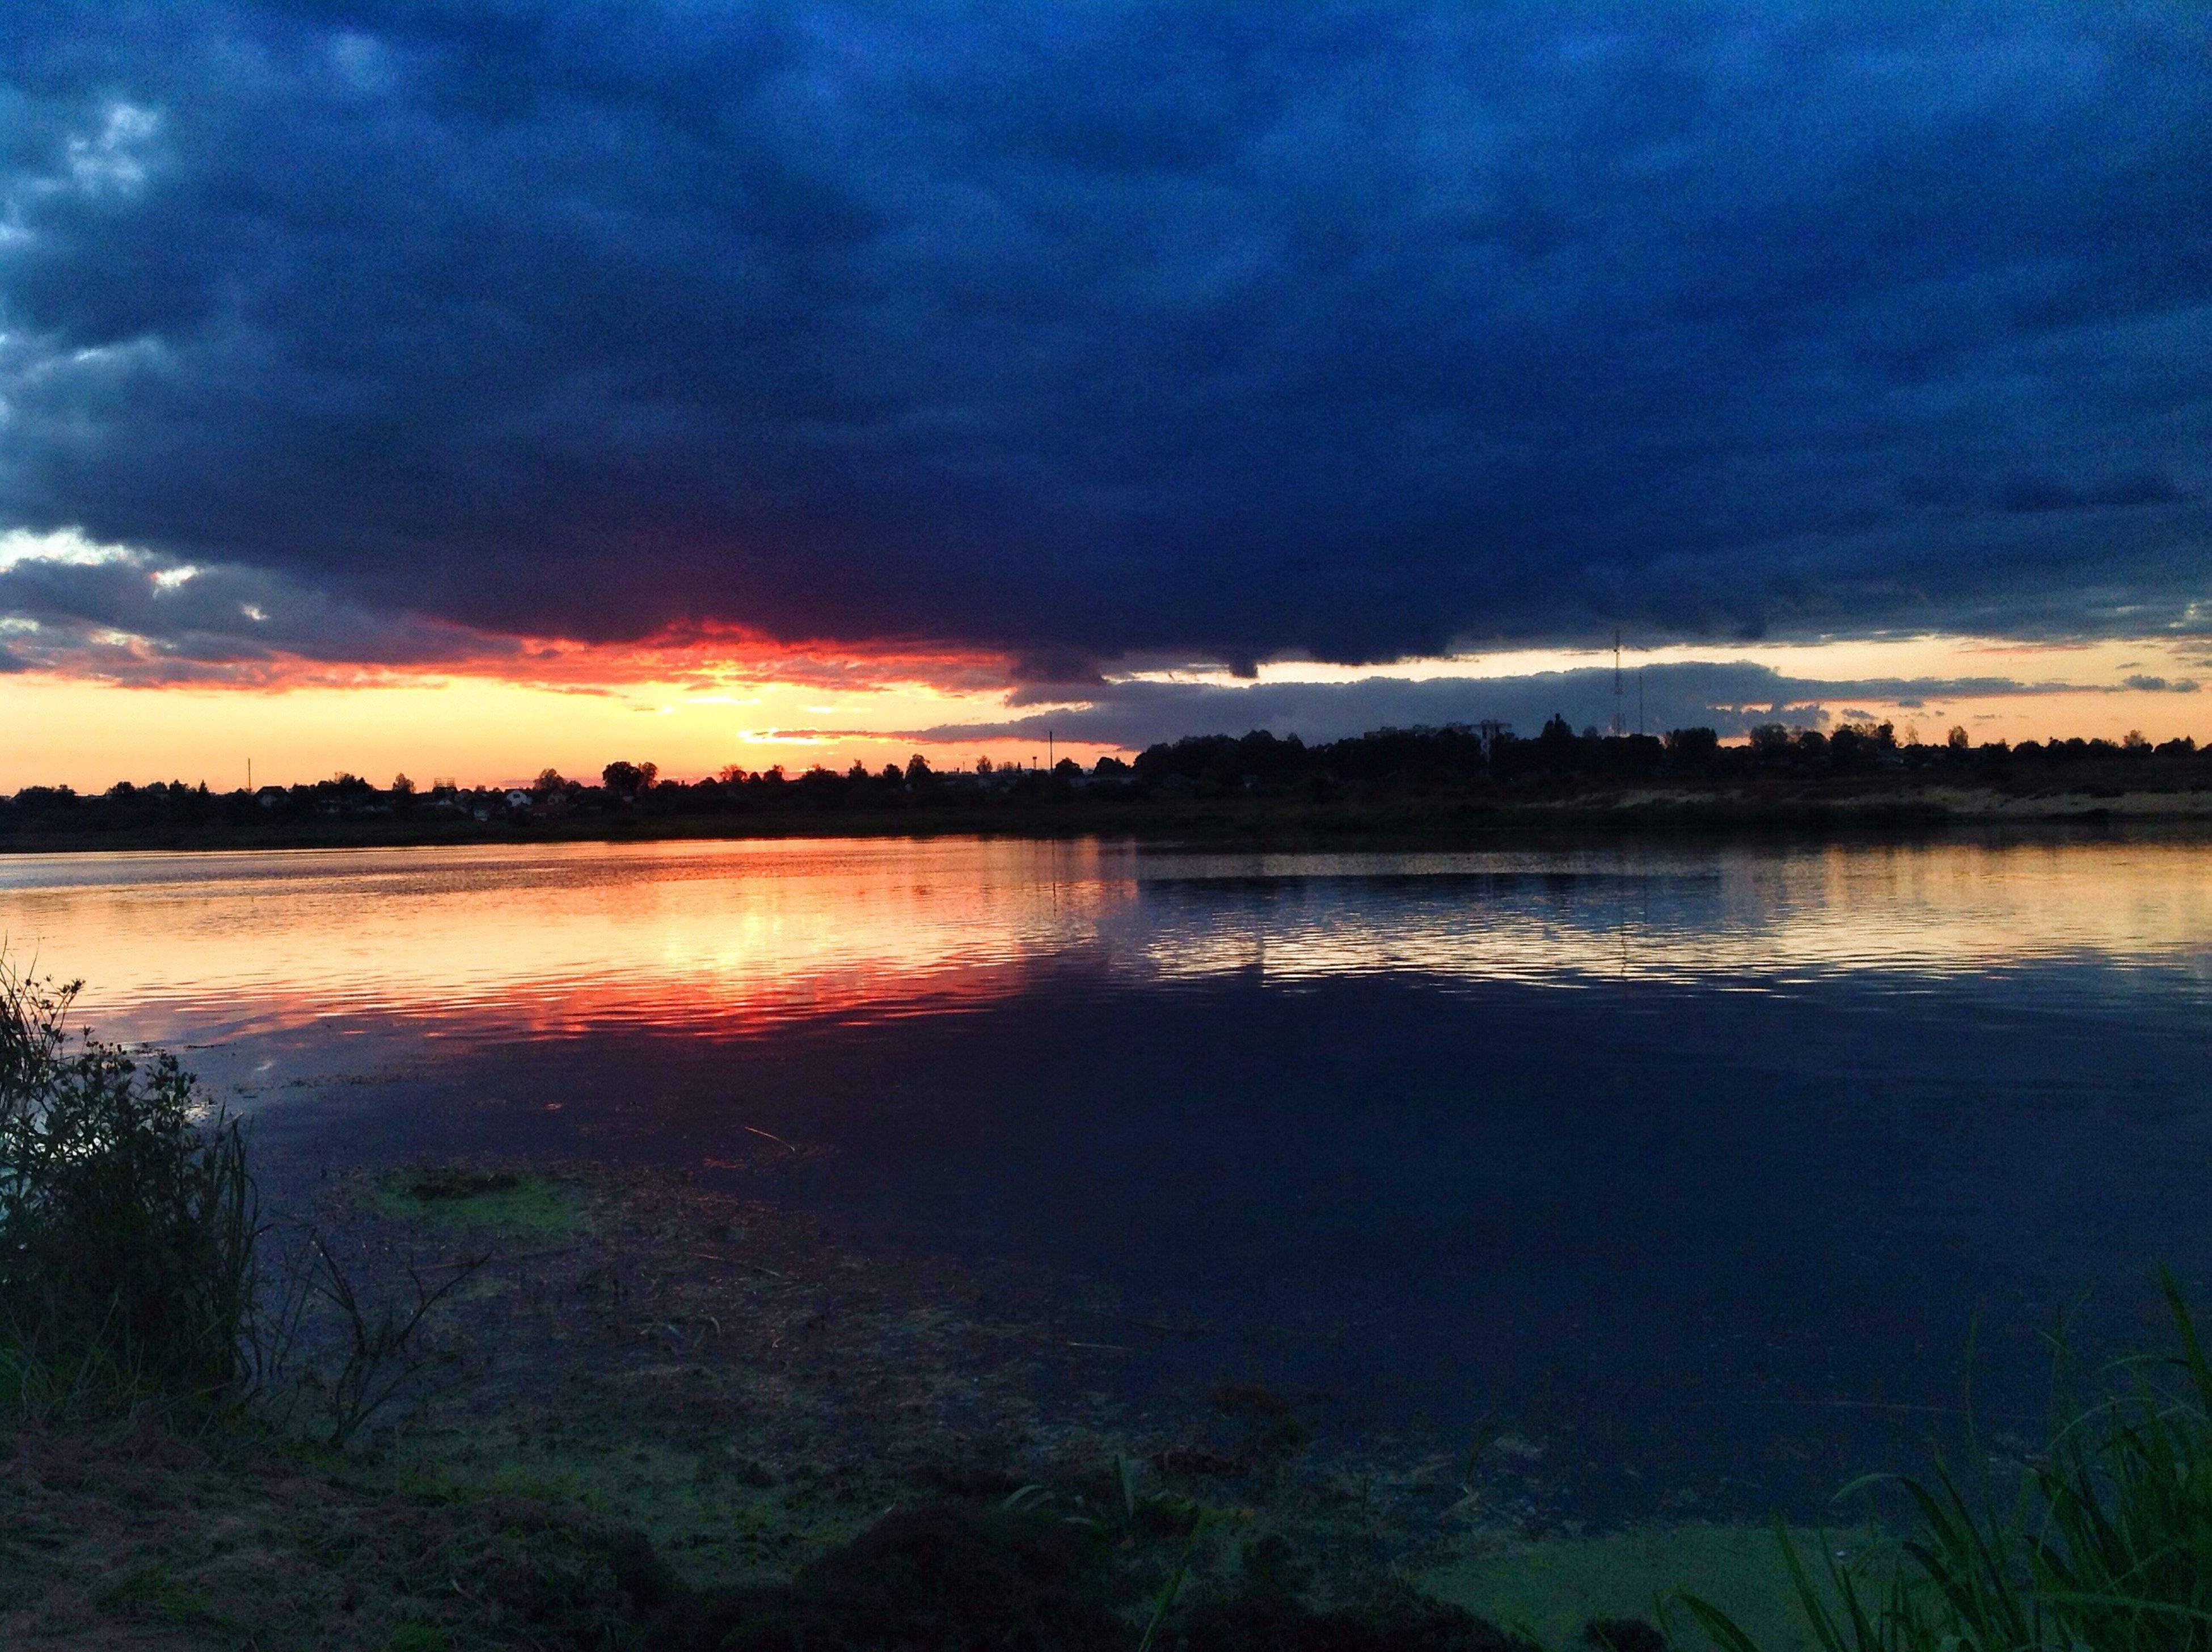 water, tranquil scene, sunset, scenics, tranquility, lake, sky, beauty in nature, calm, blue, reflection, idyllic, cloud, nature, orange color, cloud - sky, atmospheric mood, non-urban scene, dramatic sky, moody sky, storm cloud, outdoors, cloudy, countryside, remote, sea, cloudscape, majestic, atmosphere